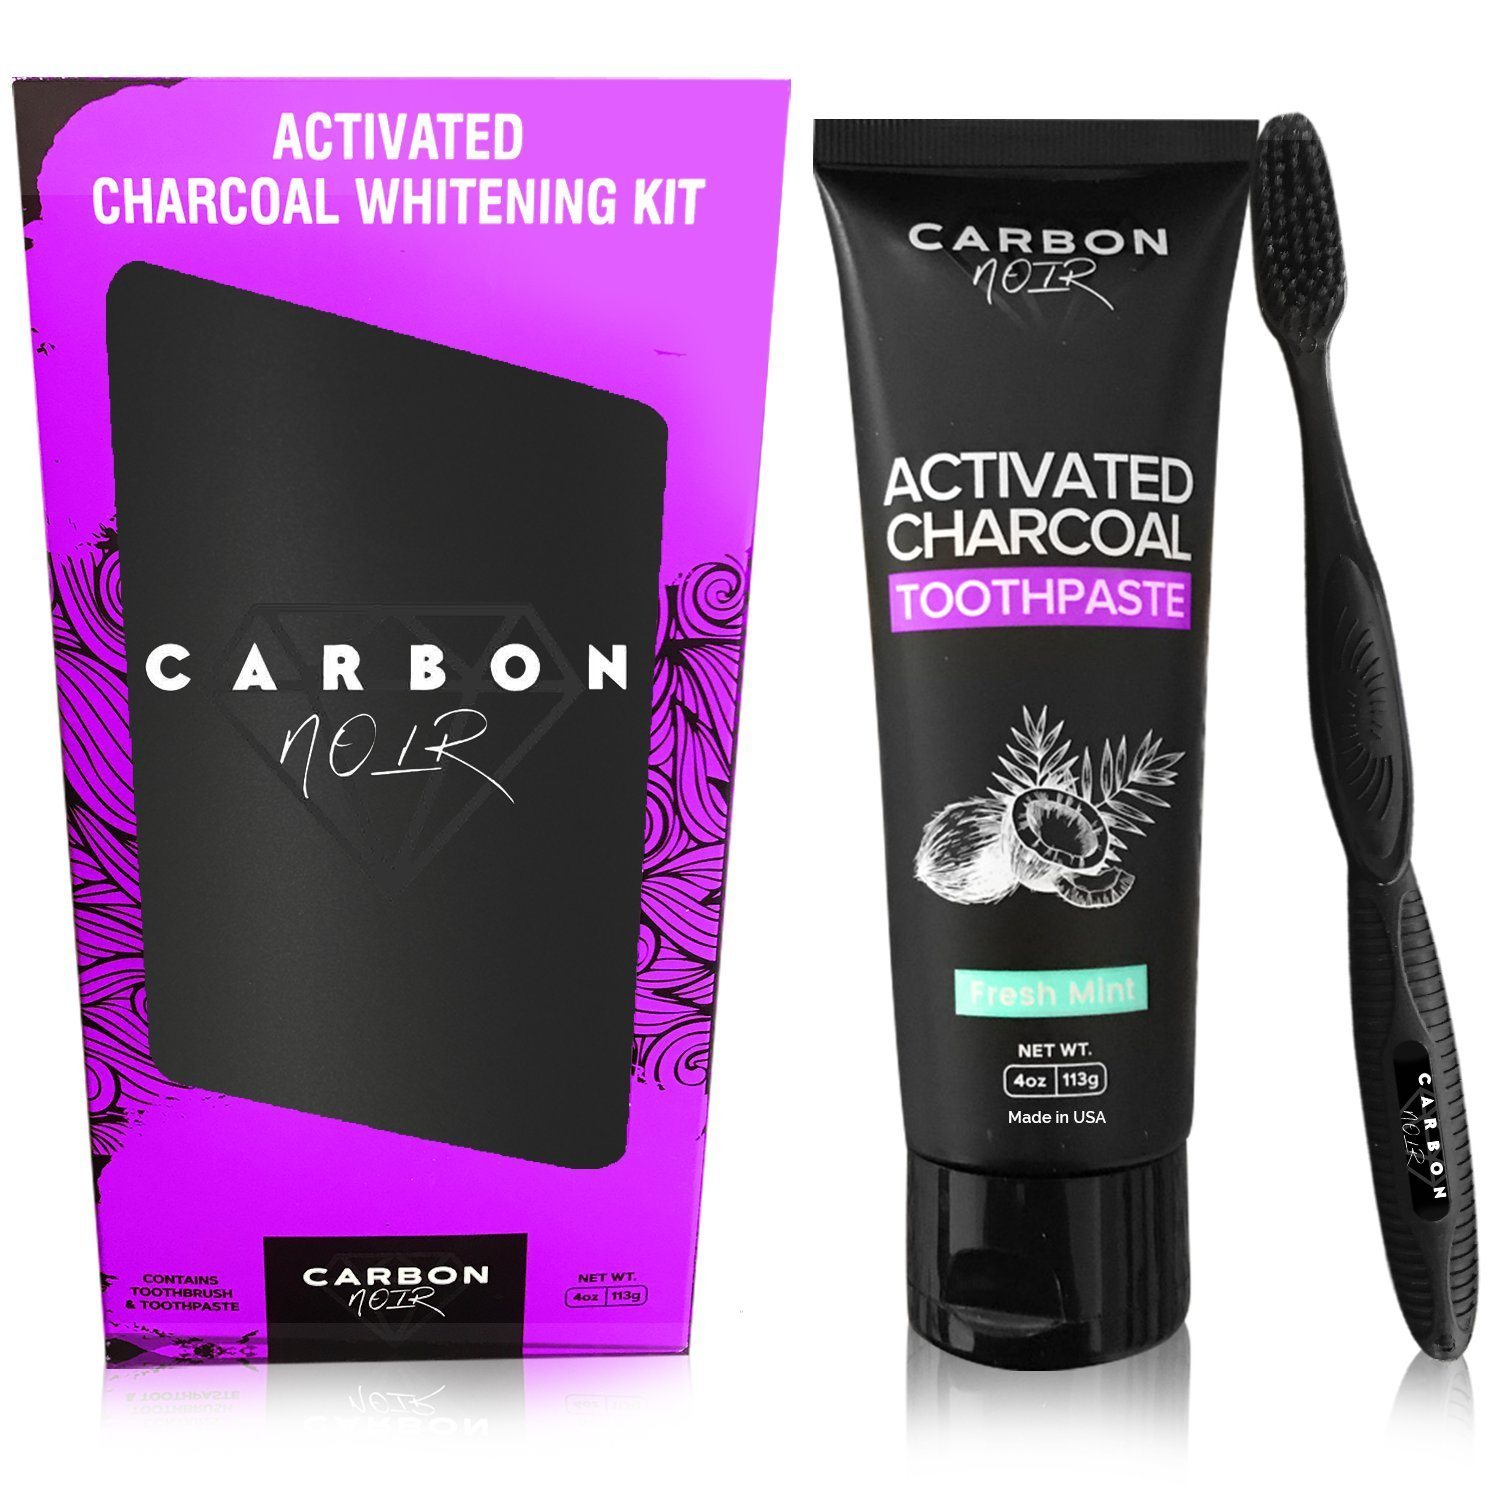 Activated Charcoal Toothpaste Teeth Whitening Kit w/ Coconut Oil, Black Binchotan Toothbrush Included - Made in USA - Natural Whitener, Fluoride Free - No messy powder or strips - Removes Tooth Stains